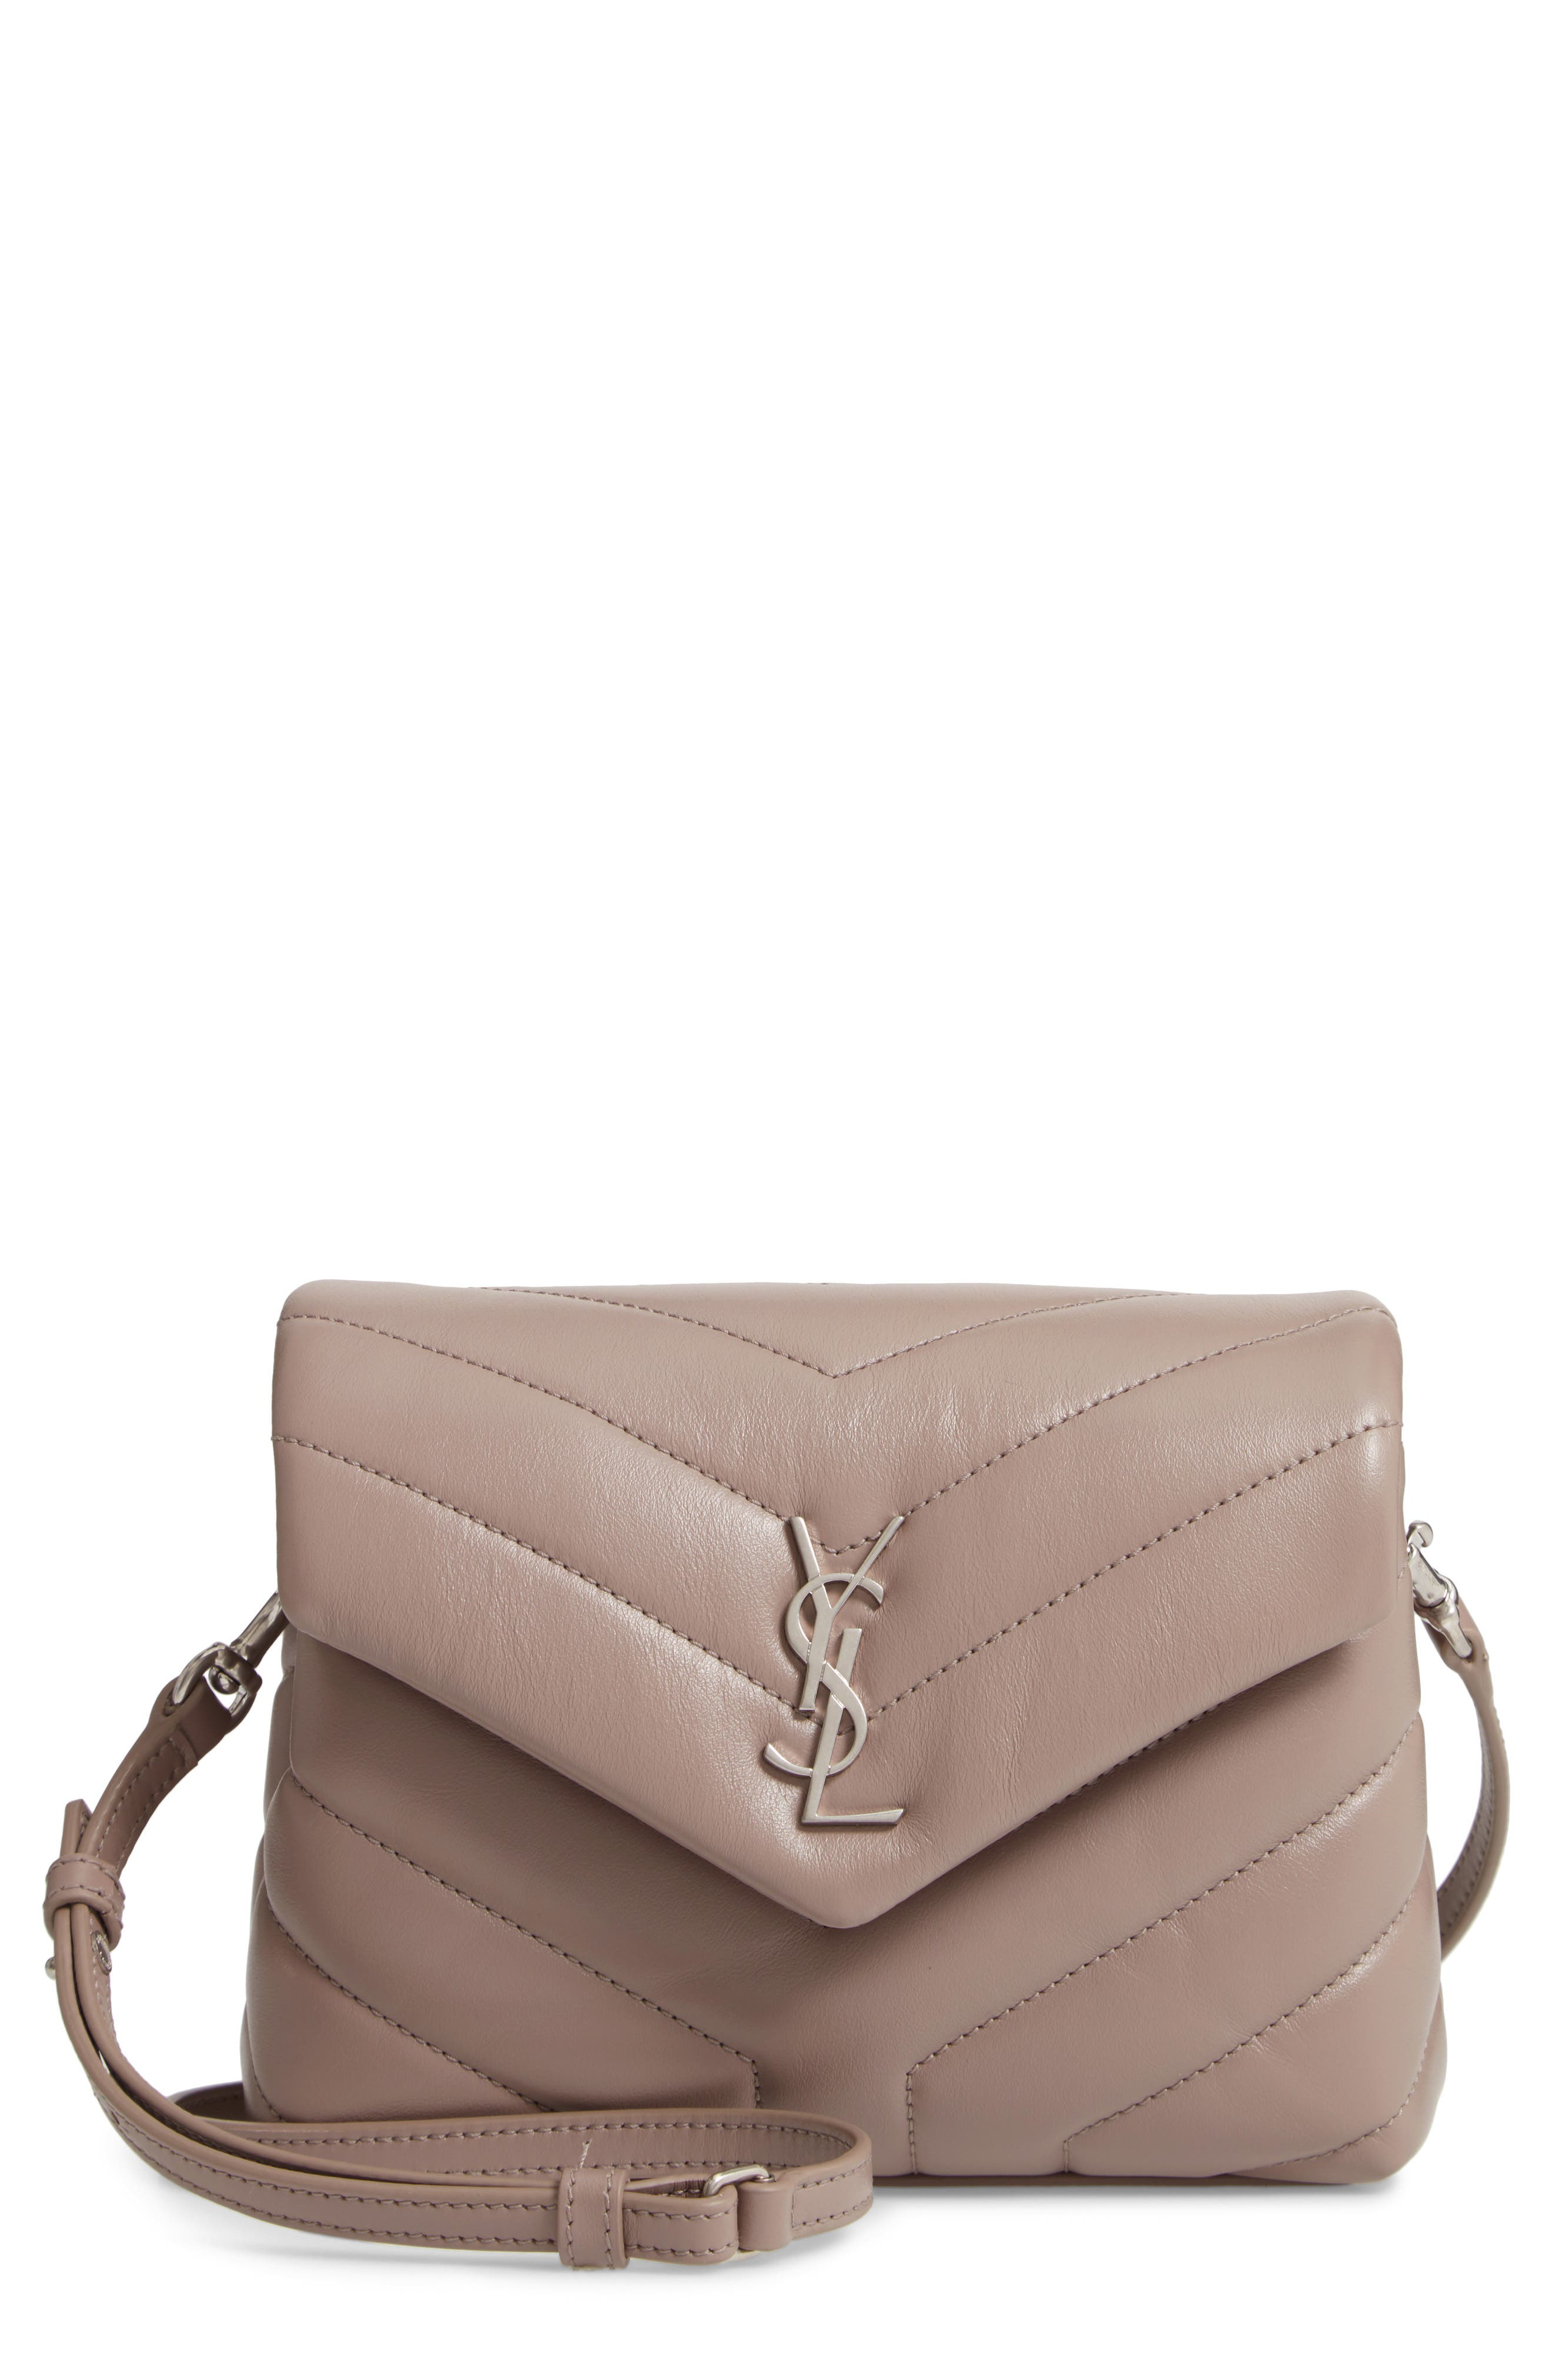 Toy Loulou Calfskin Leather Crossbody Bag,                             Main thumbnail 1, color,                             MINK